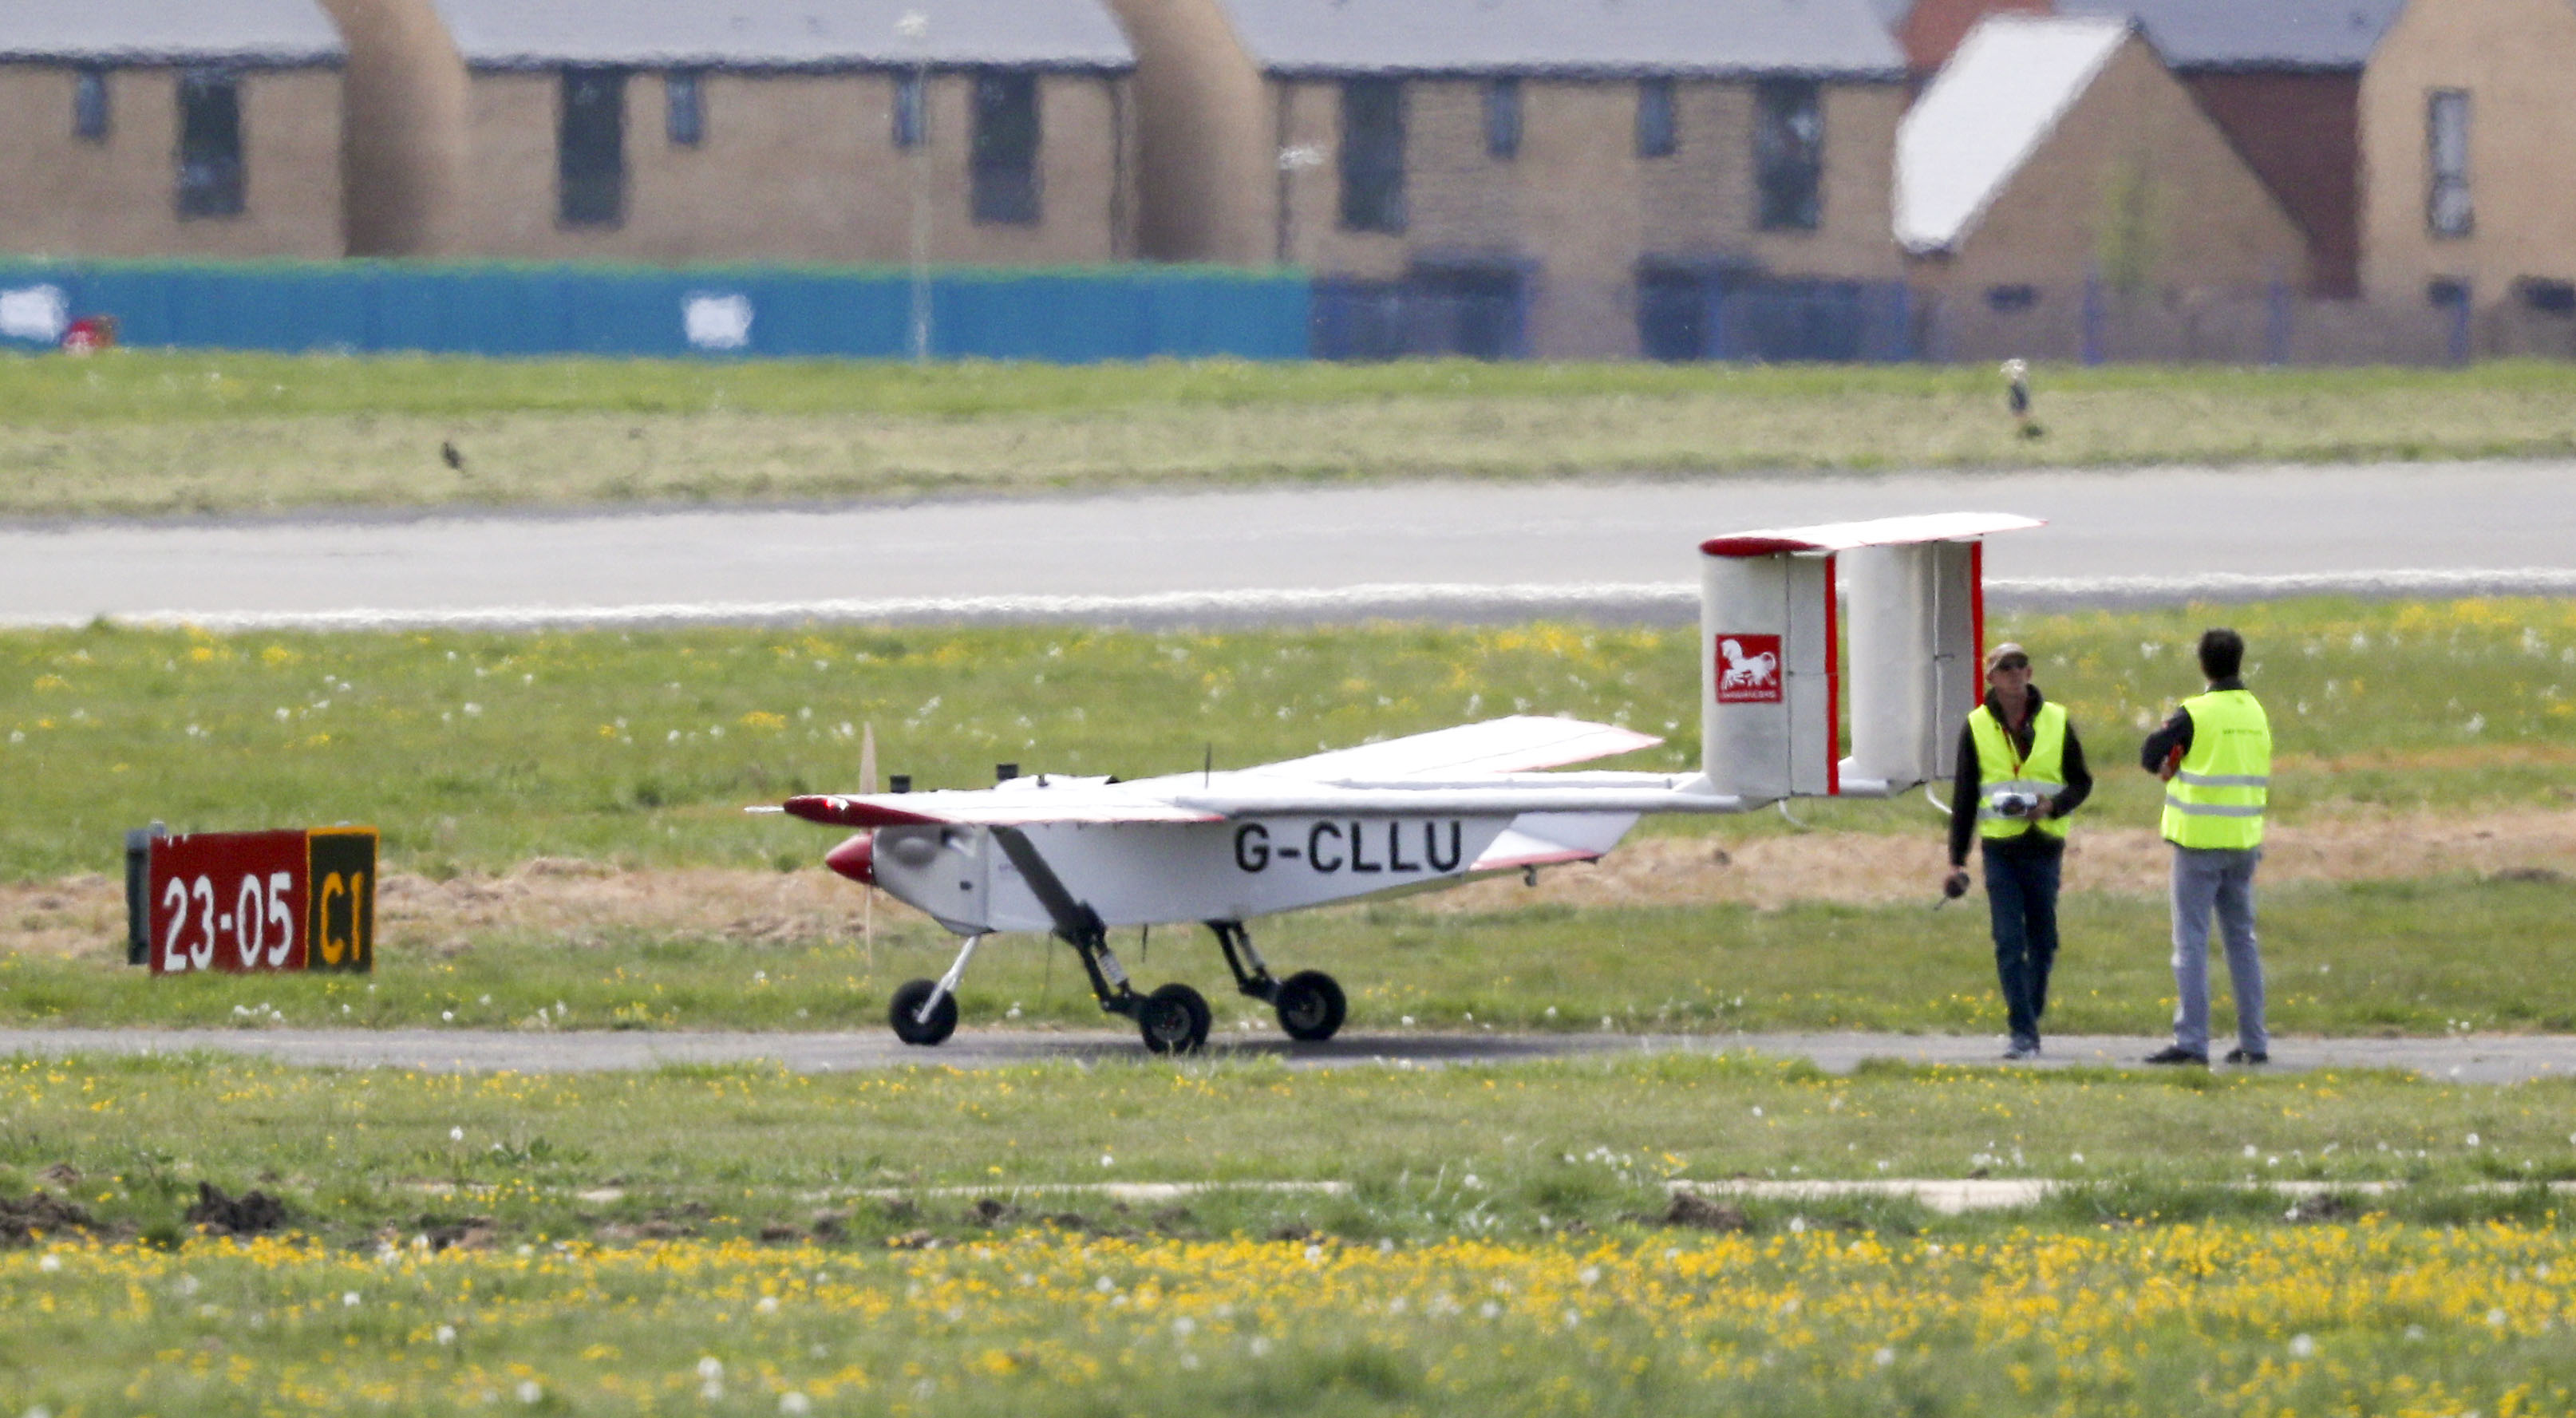 Solent Transport conducts a test flight of its drone at Lee-on-the-Solent in Hampshire. Drones are due to deliver NHS supplies to Isle of Wight. as the UK continues in lockdown to help curb the spread of the coronavirus.